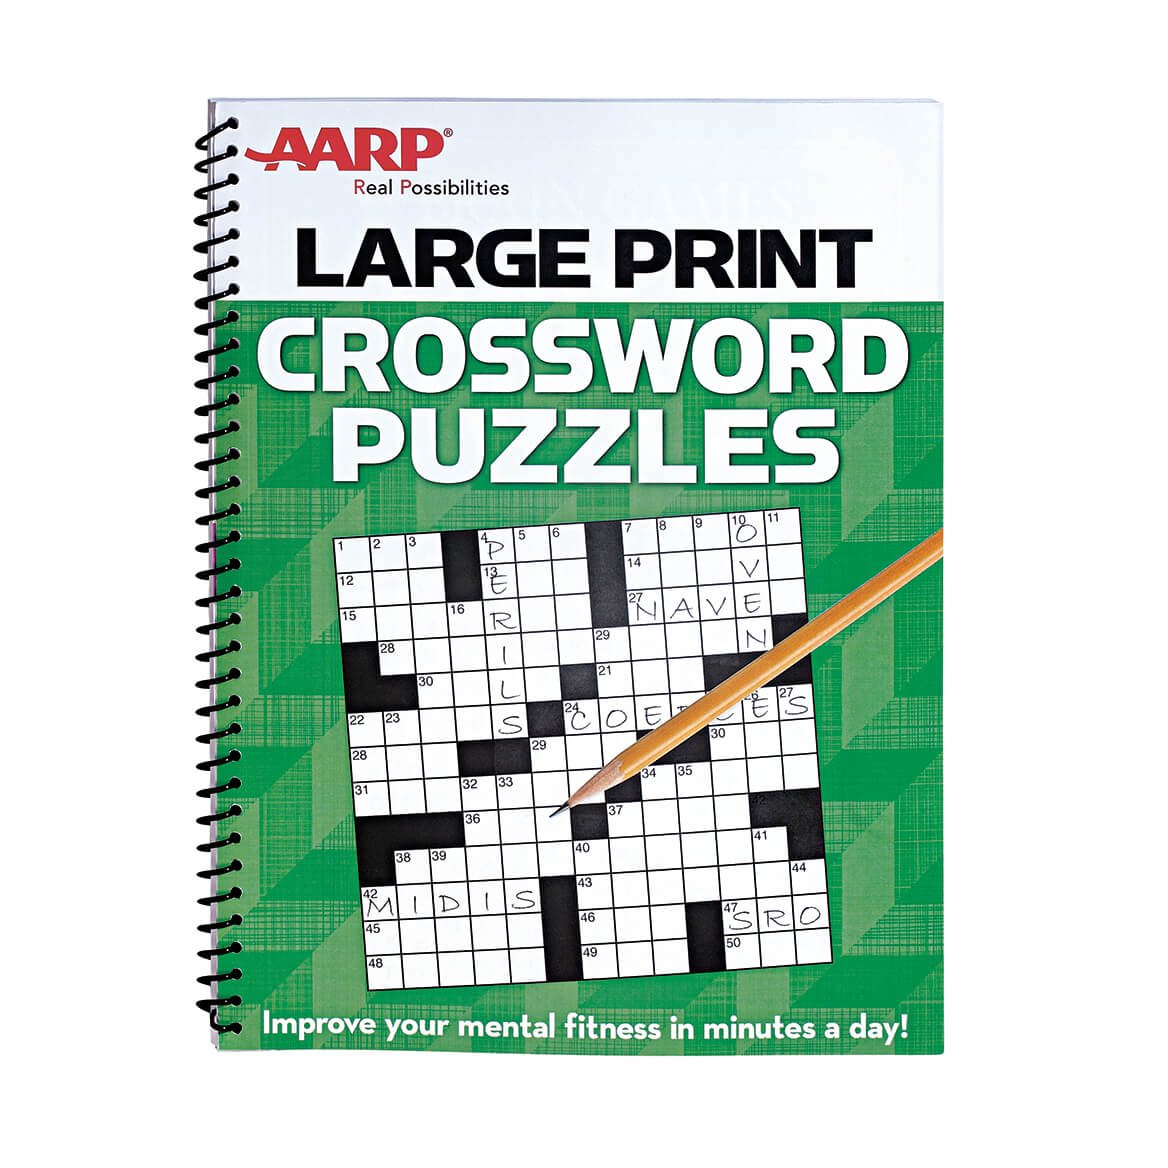 - Large Print Crossword Puzzles - Crossword Puzzles - Miles Kimball